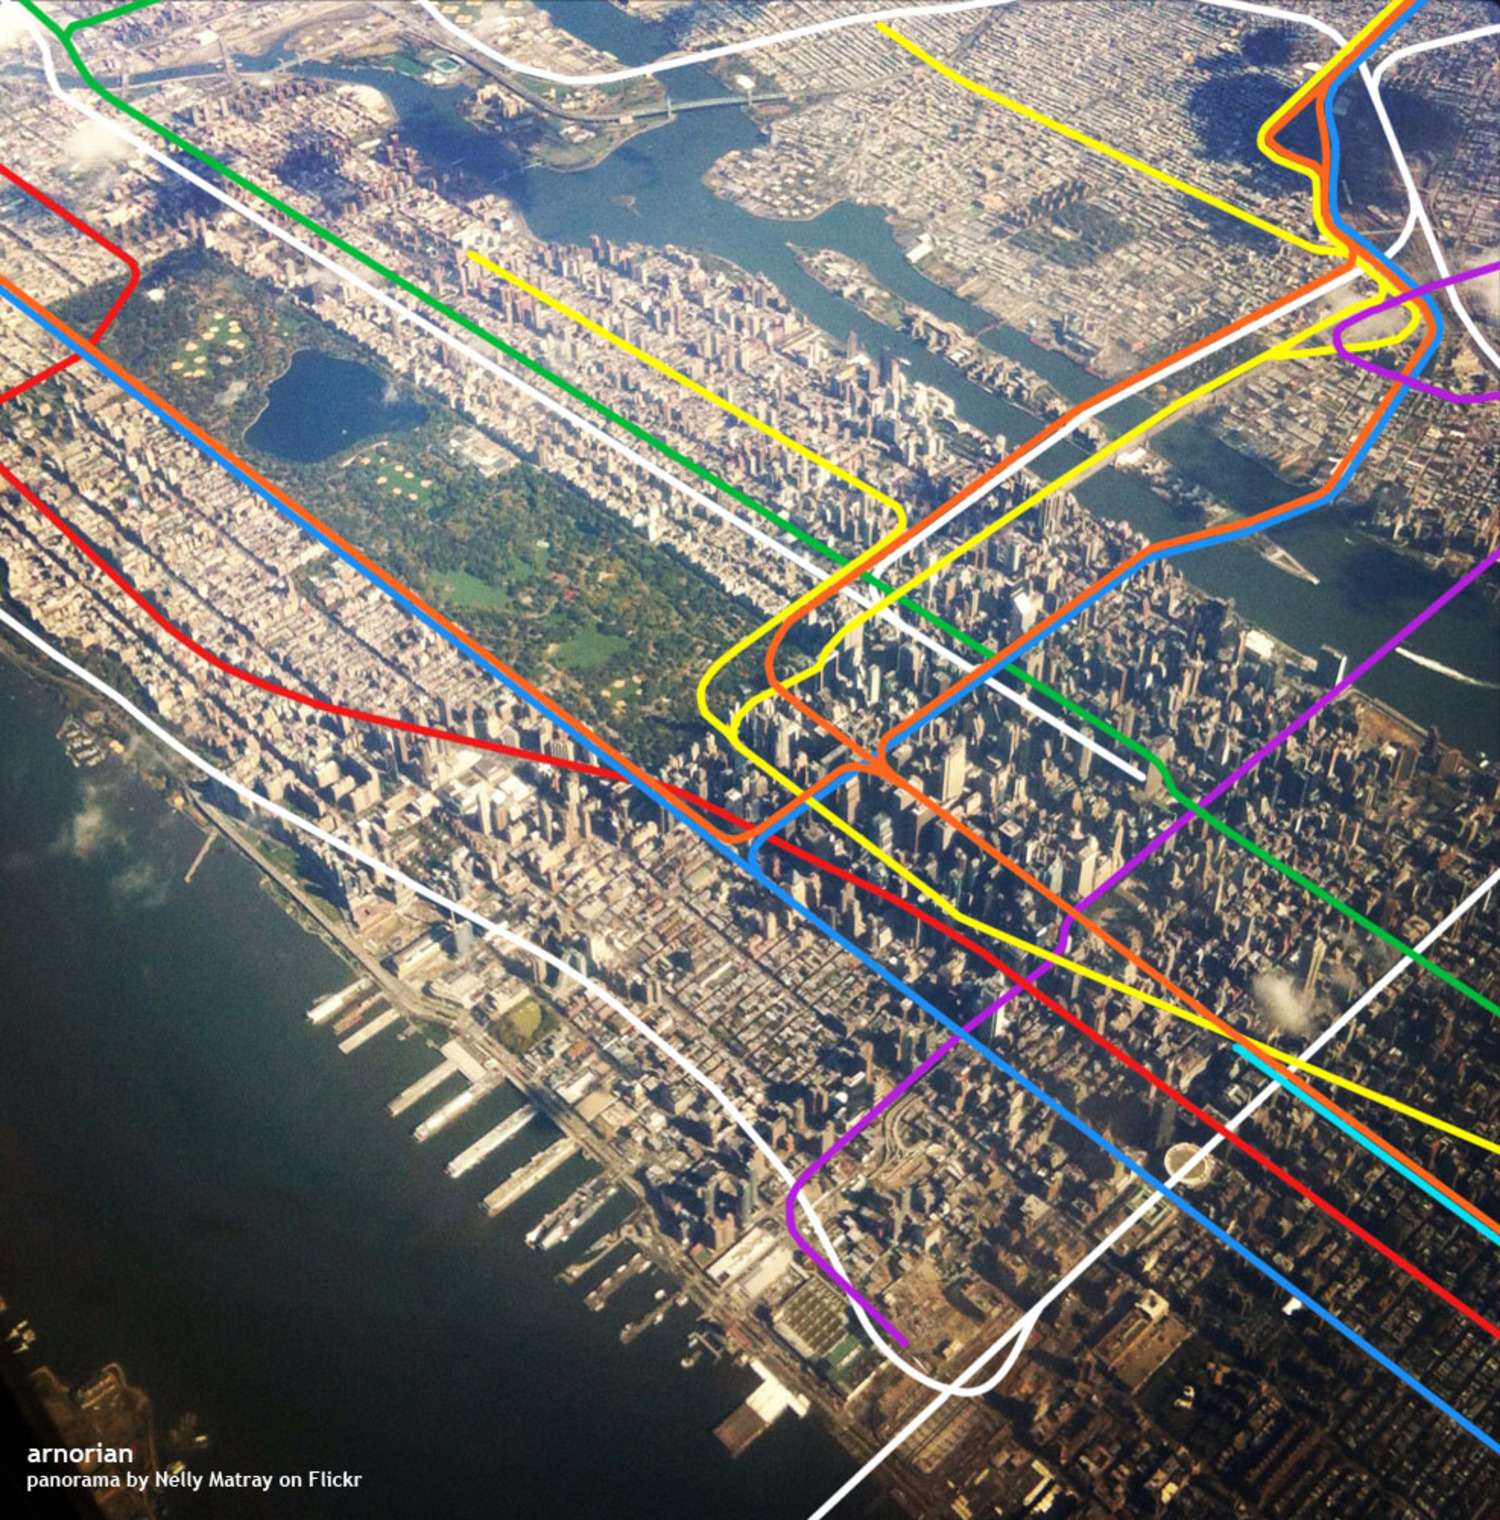 A skyview of Manhattan with overlayed subway and rail lines. 7 Subway Extension, the first phase of the Second Avenue Subway, and East Side Access included.